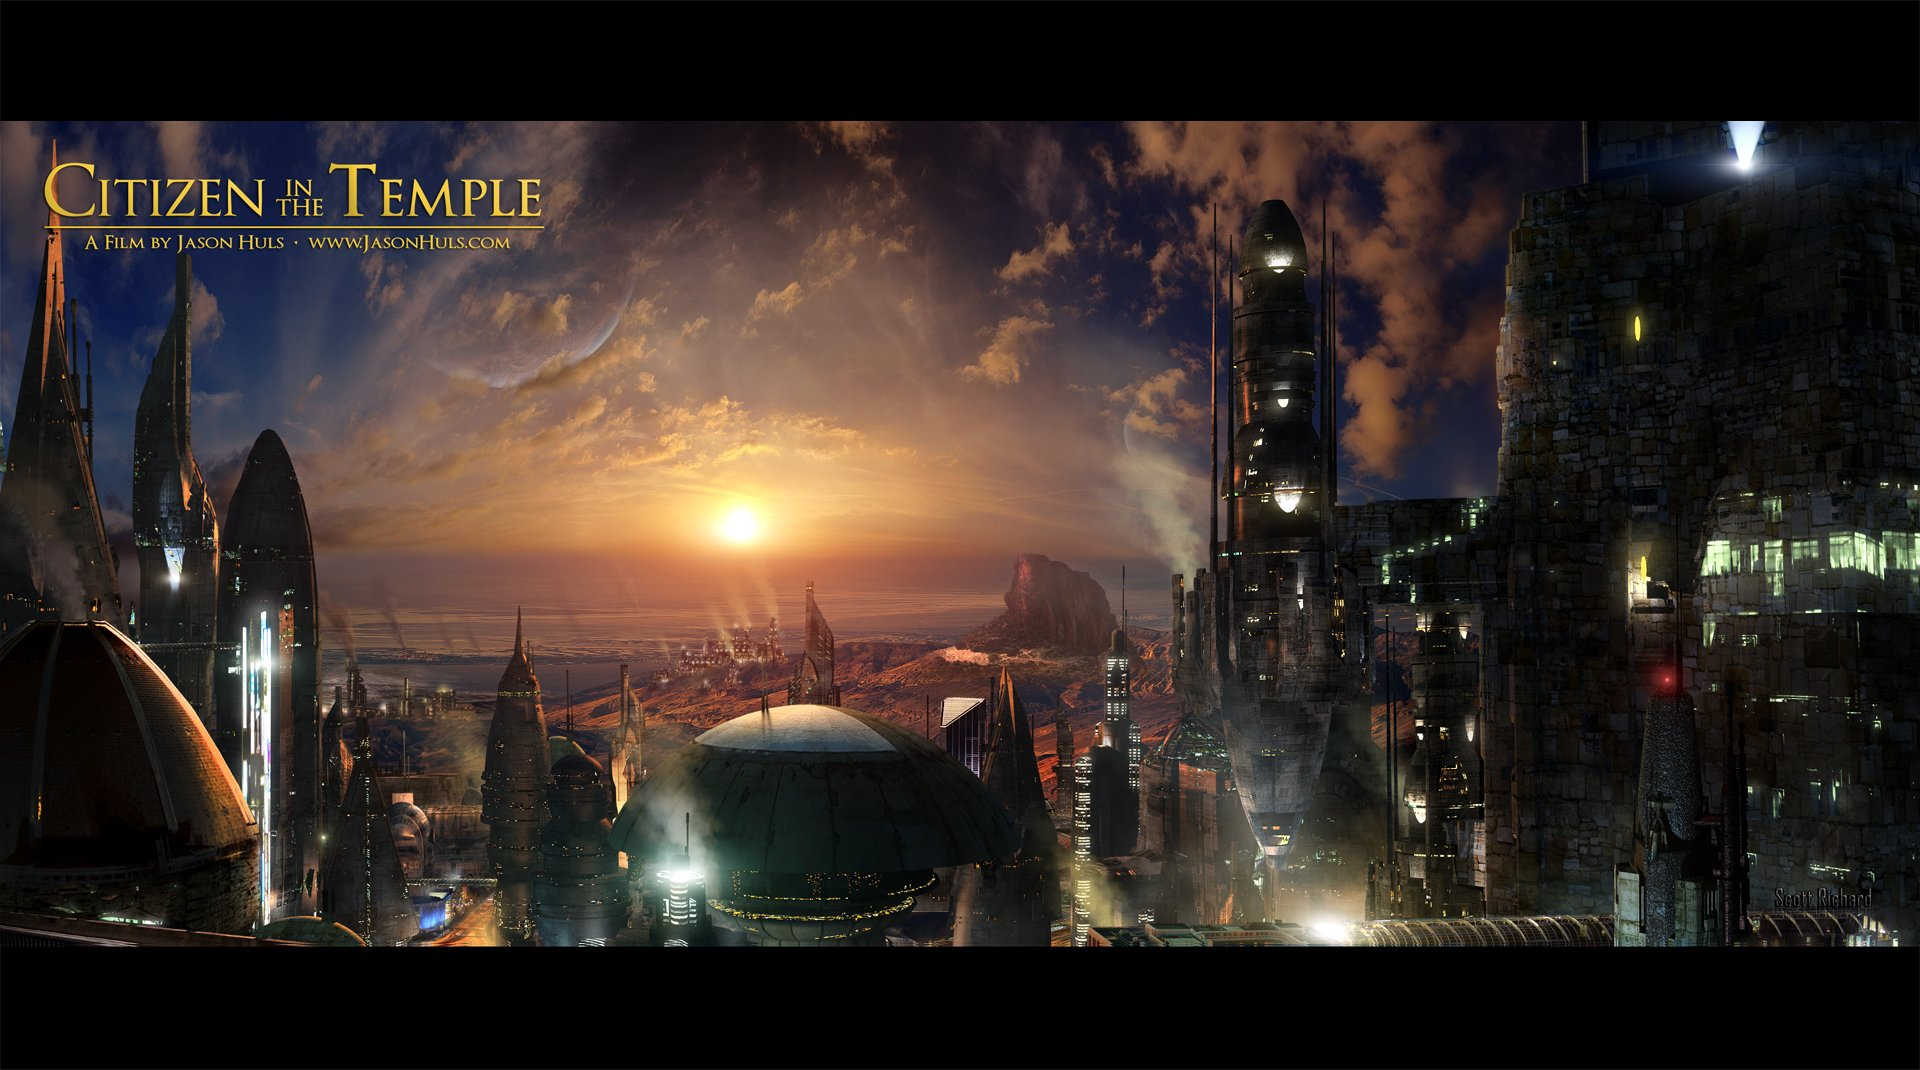 Matte Painting for the Movie Citizen in the Temple